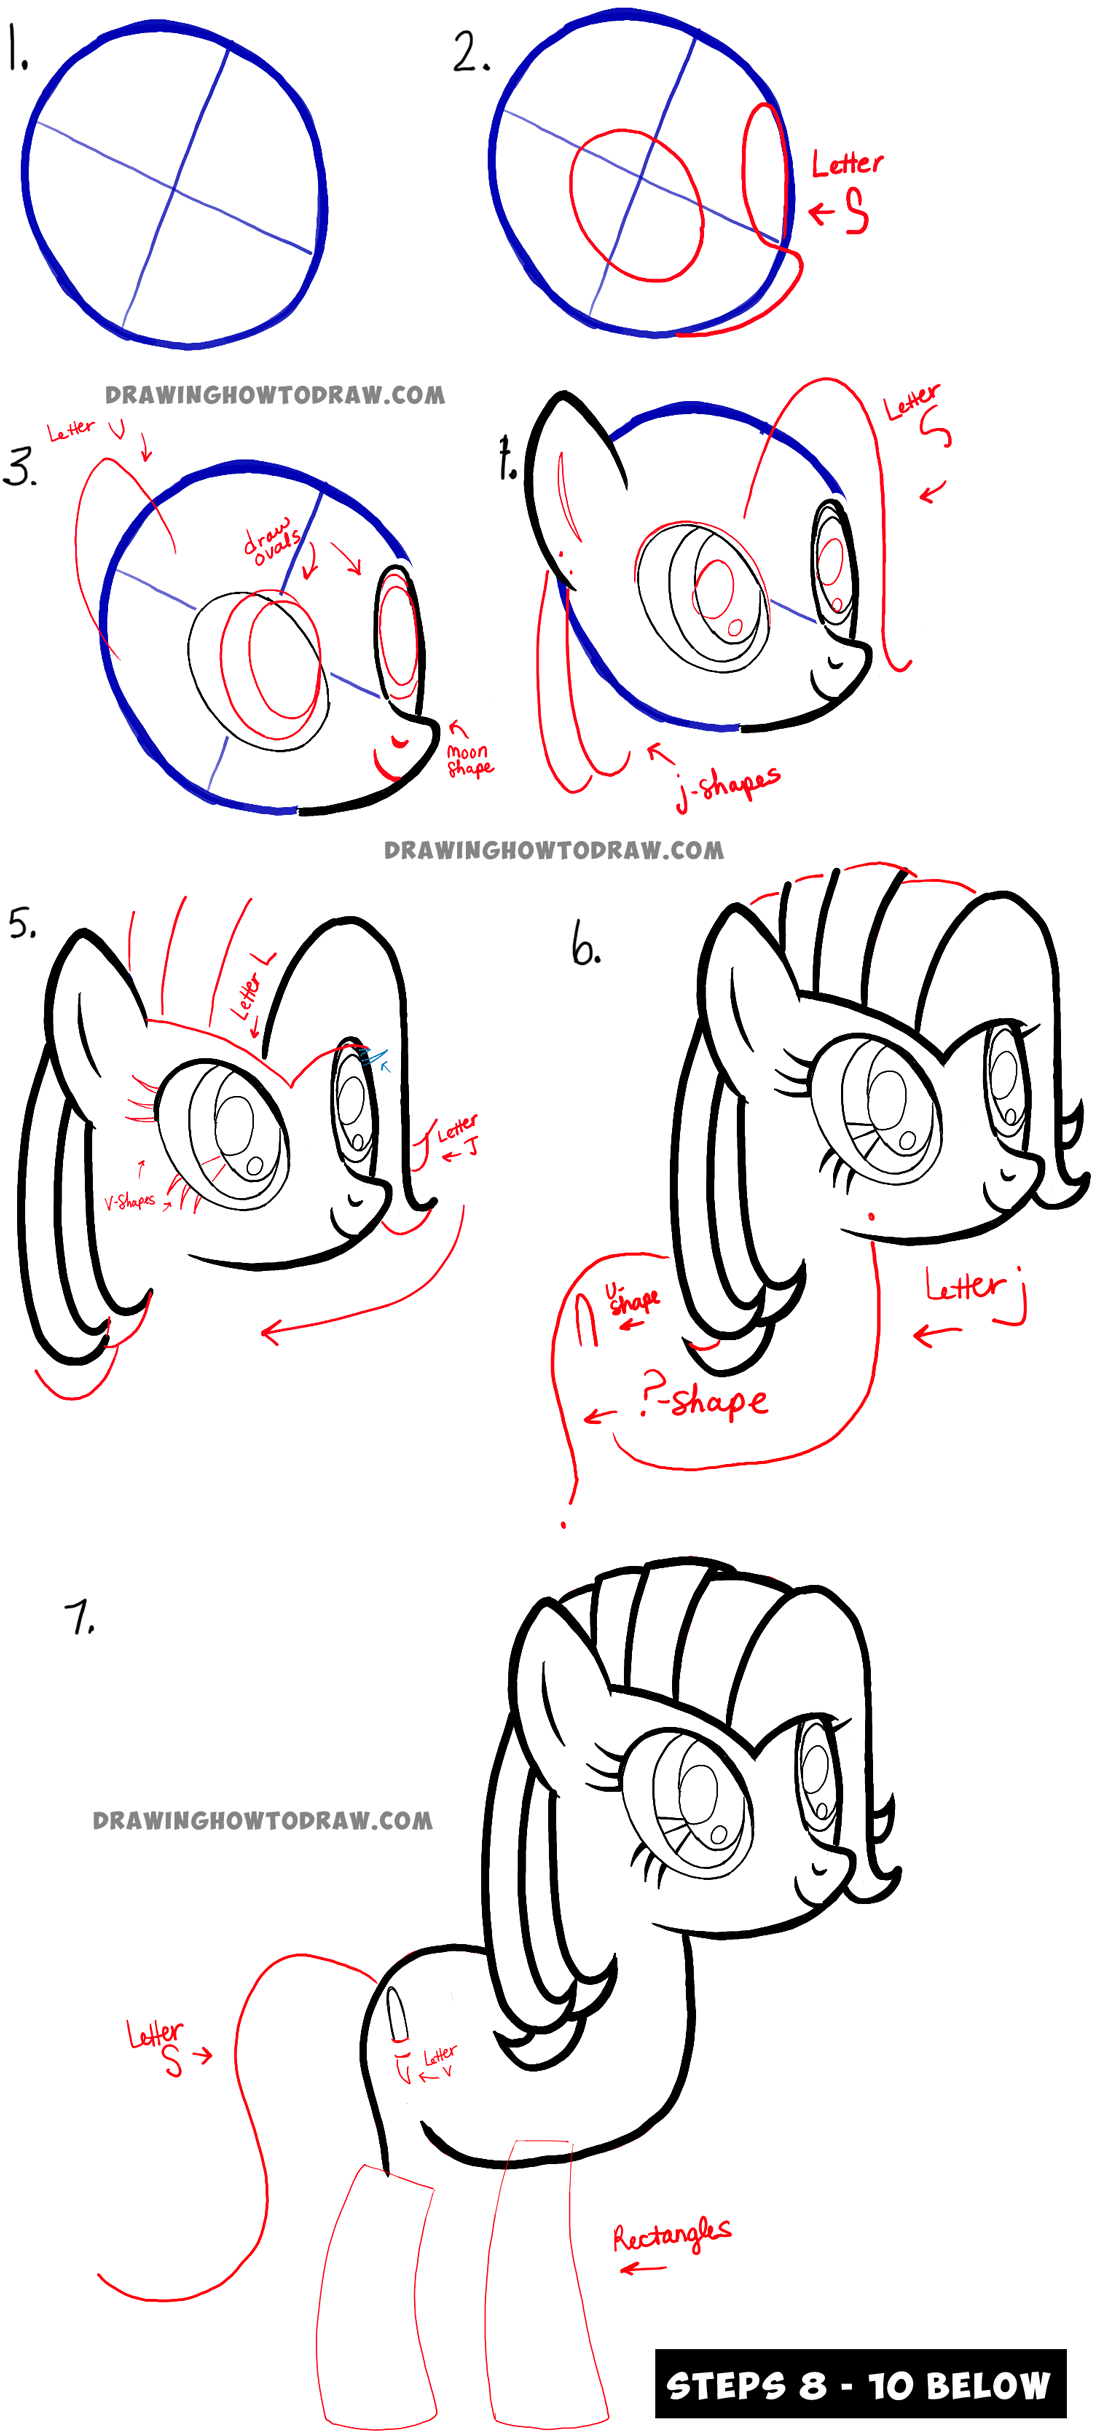 How to Draw Toola Roola Step by Step